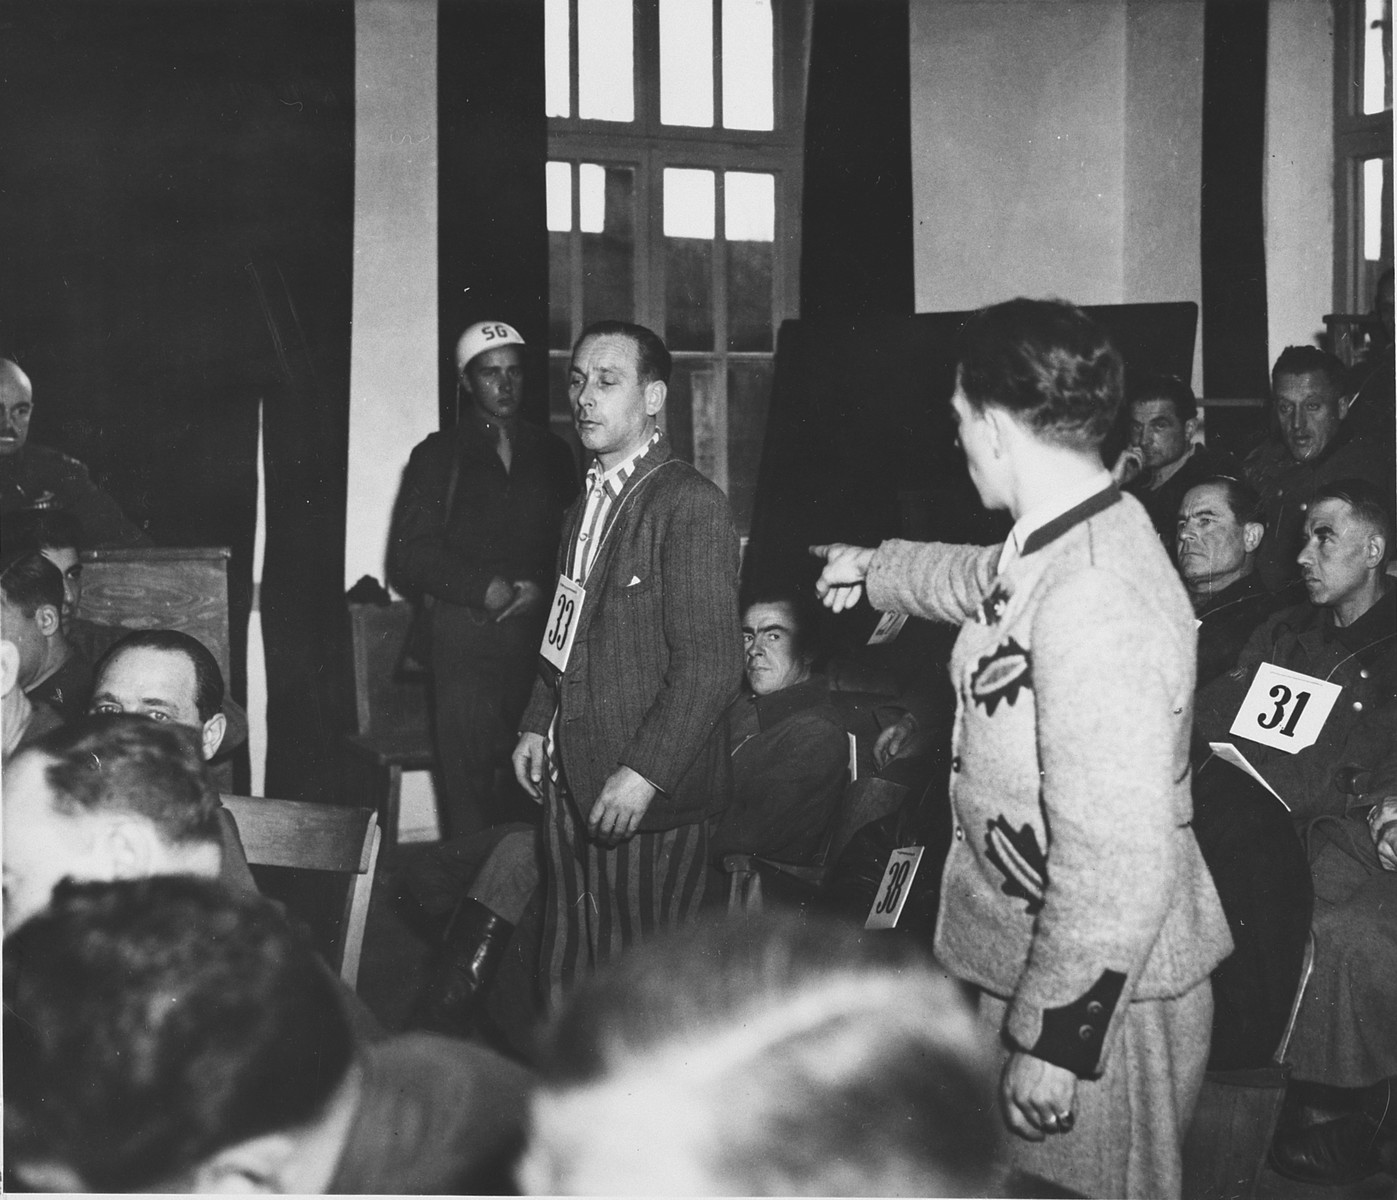 A prosecution witness points out defendant Emil Erwin Mahl during the Dachau war crimes trial.